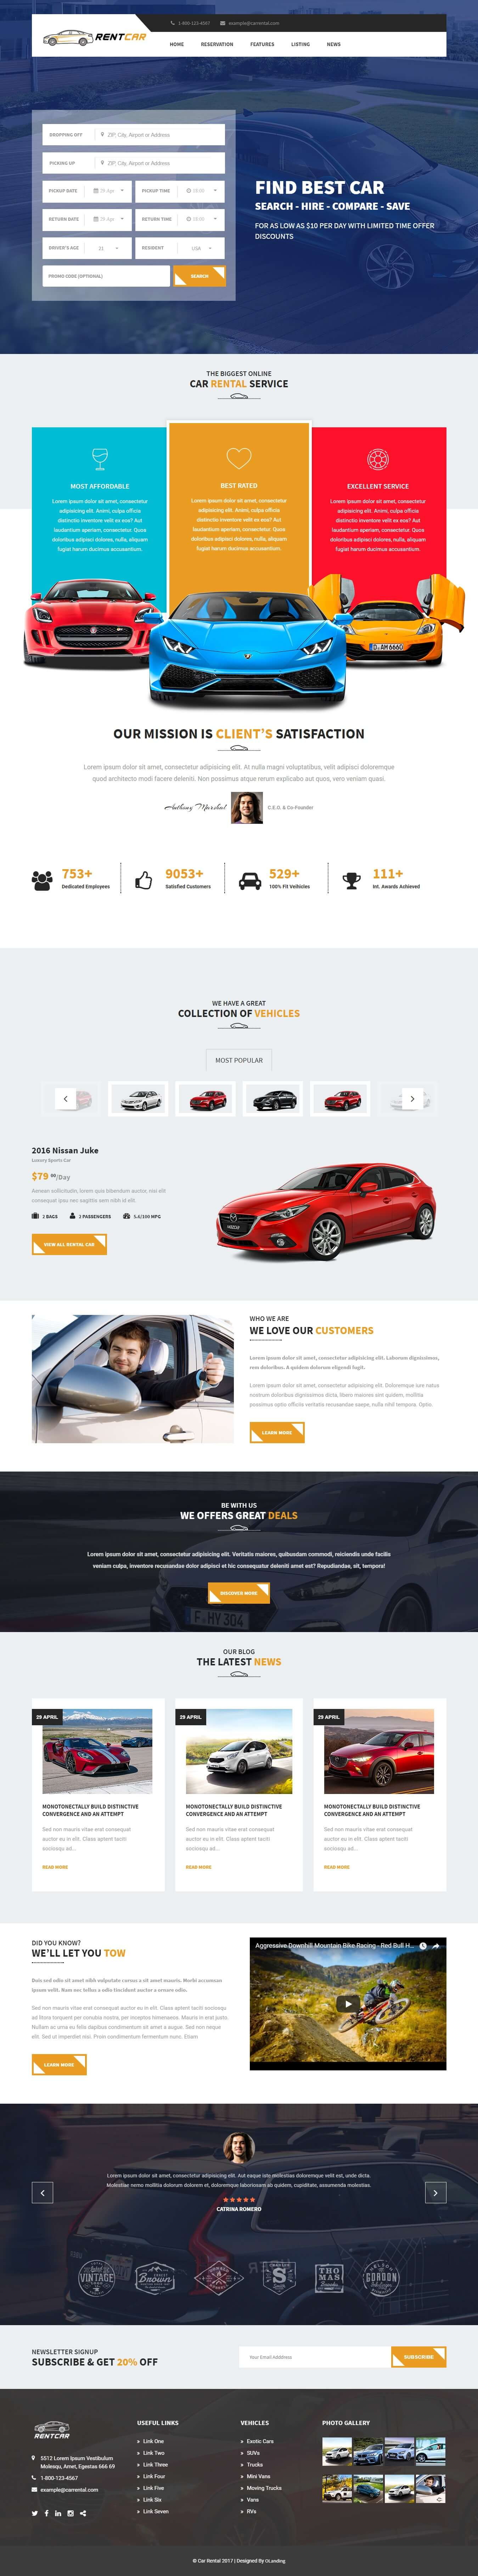 Rent car html template is made with bootstrap css html5 and js frameworks it is fully responsive with amazing gallery images the gallery is fantastic